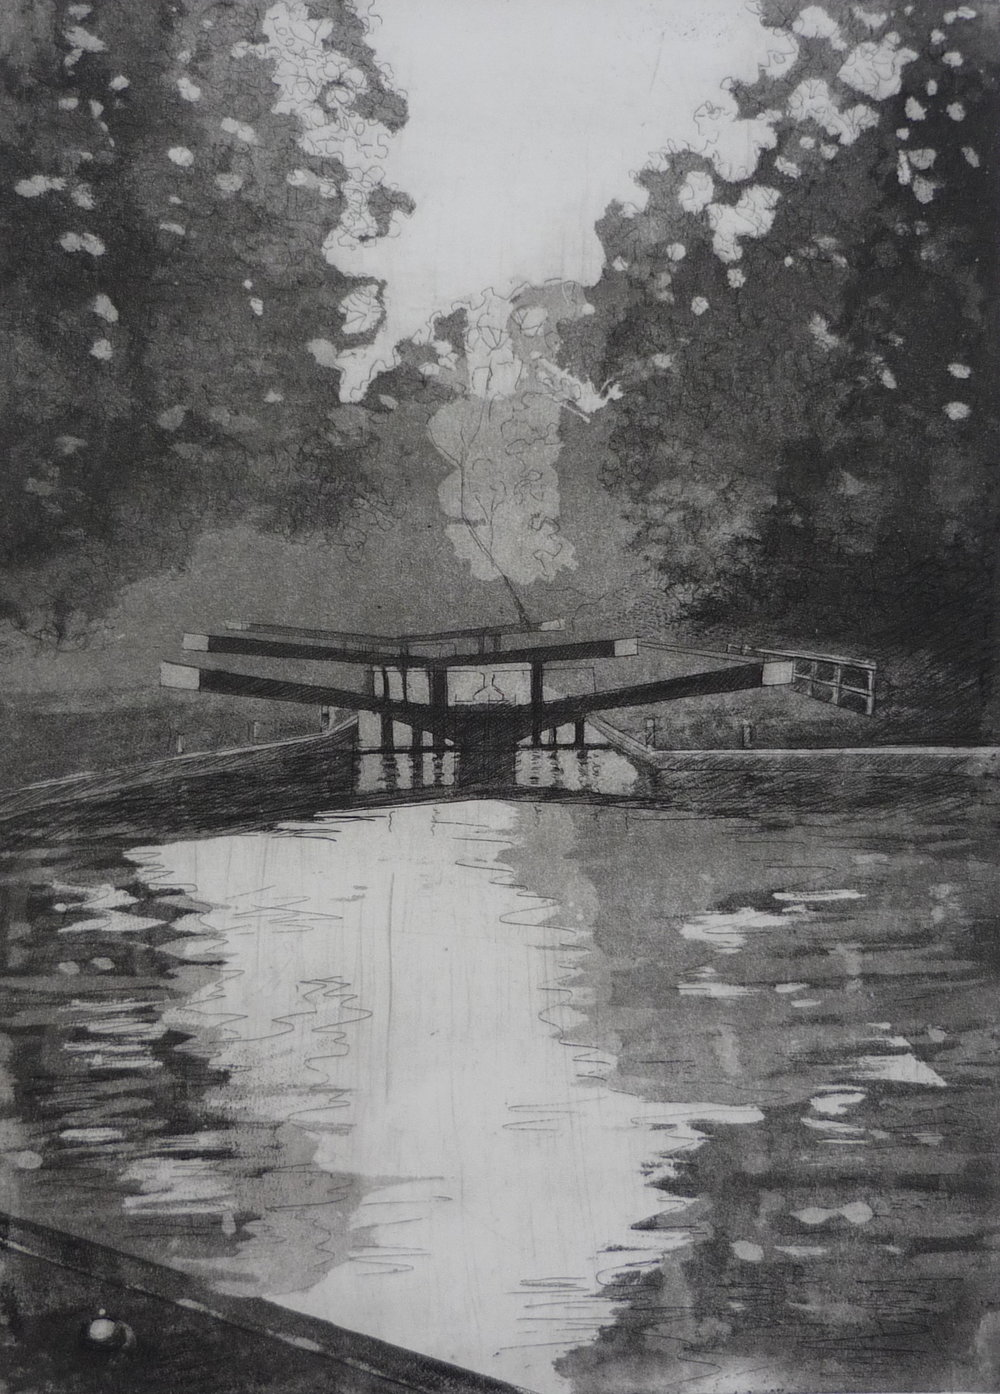 Jessica Rose, Hanwell Locks, Etching on paper, 53 cm x 41 cm x 0 cm,  http://jessicaroseartist.co.uk